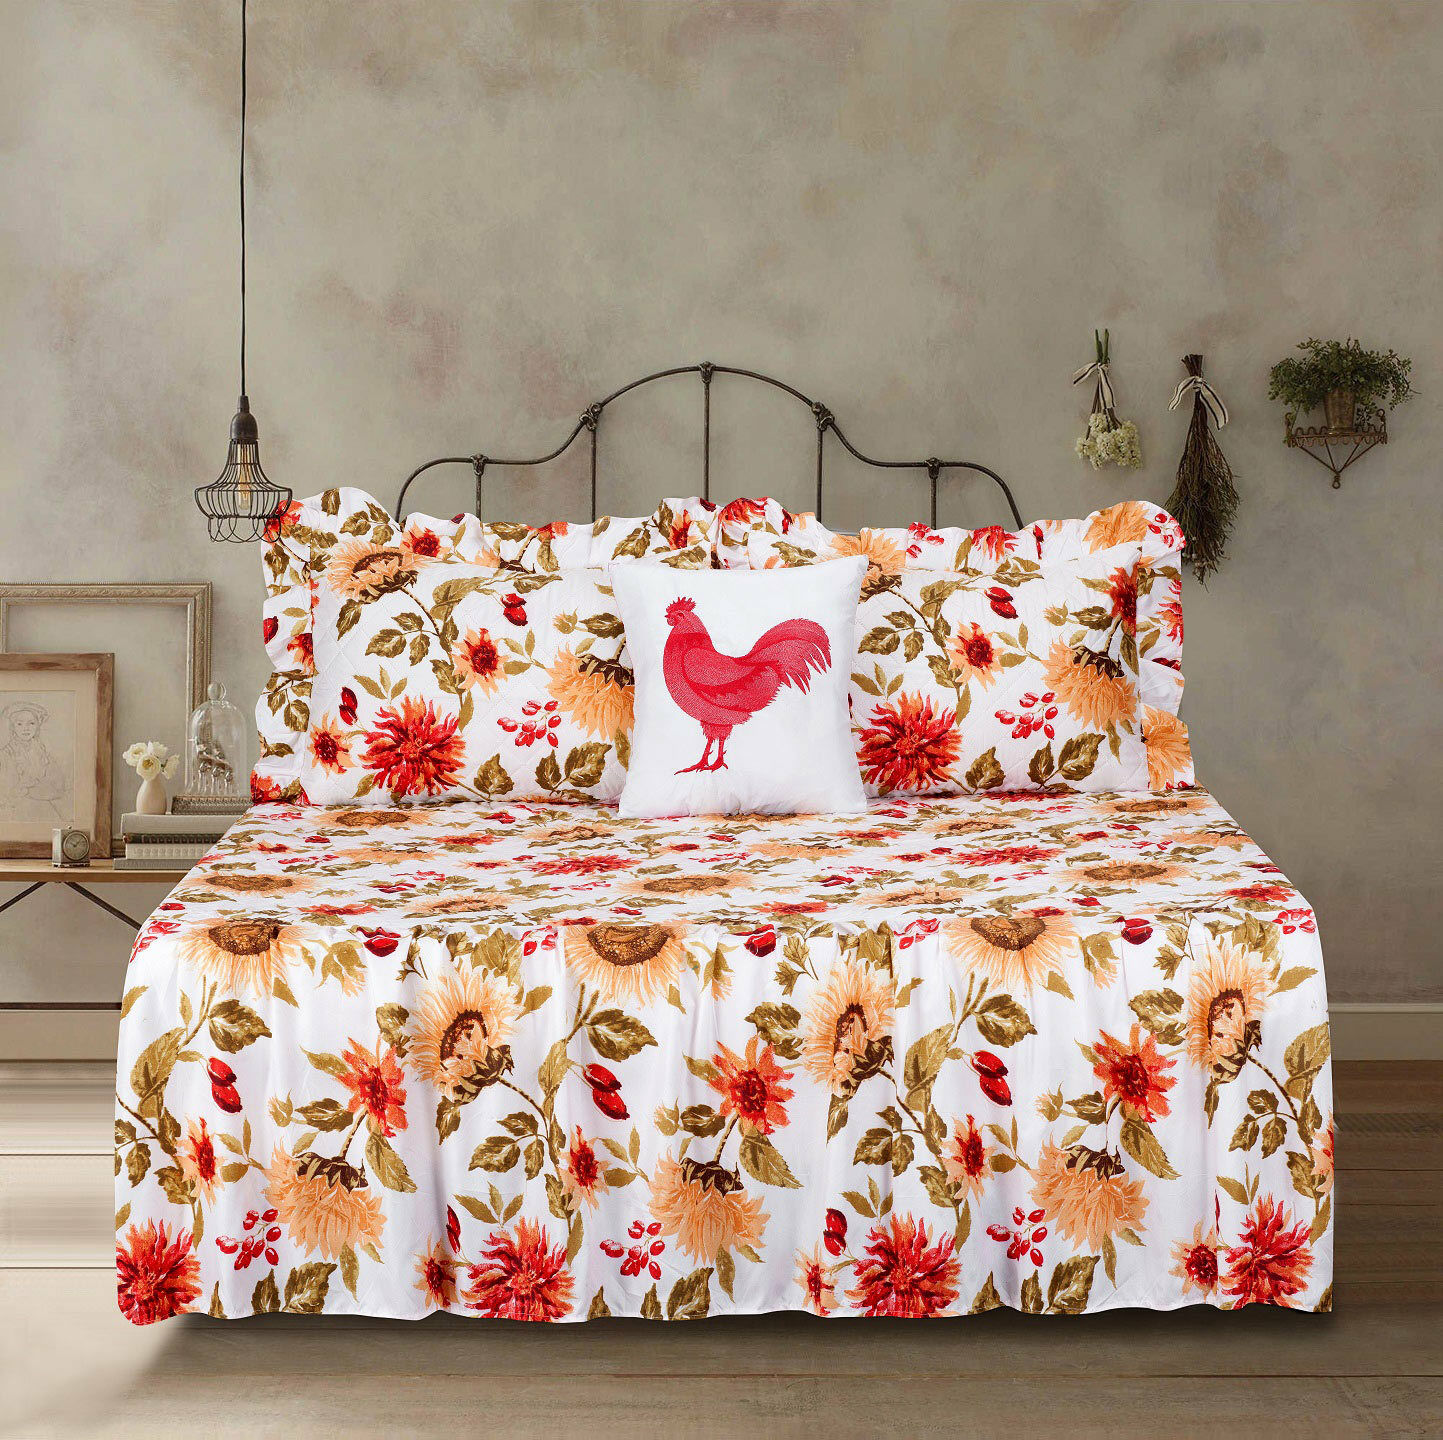 Twin Full Queen or King Quilt Sunflower Bedspread Bedding Set Floral Yellow Bedding